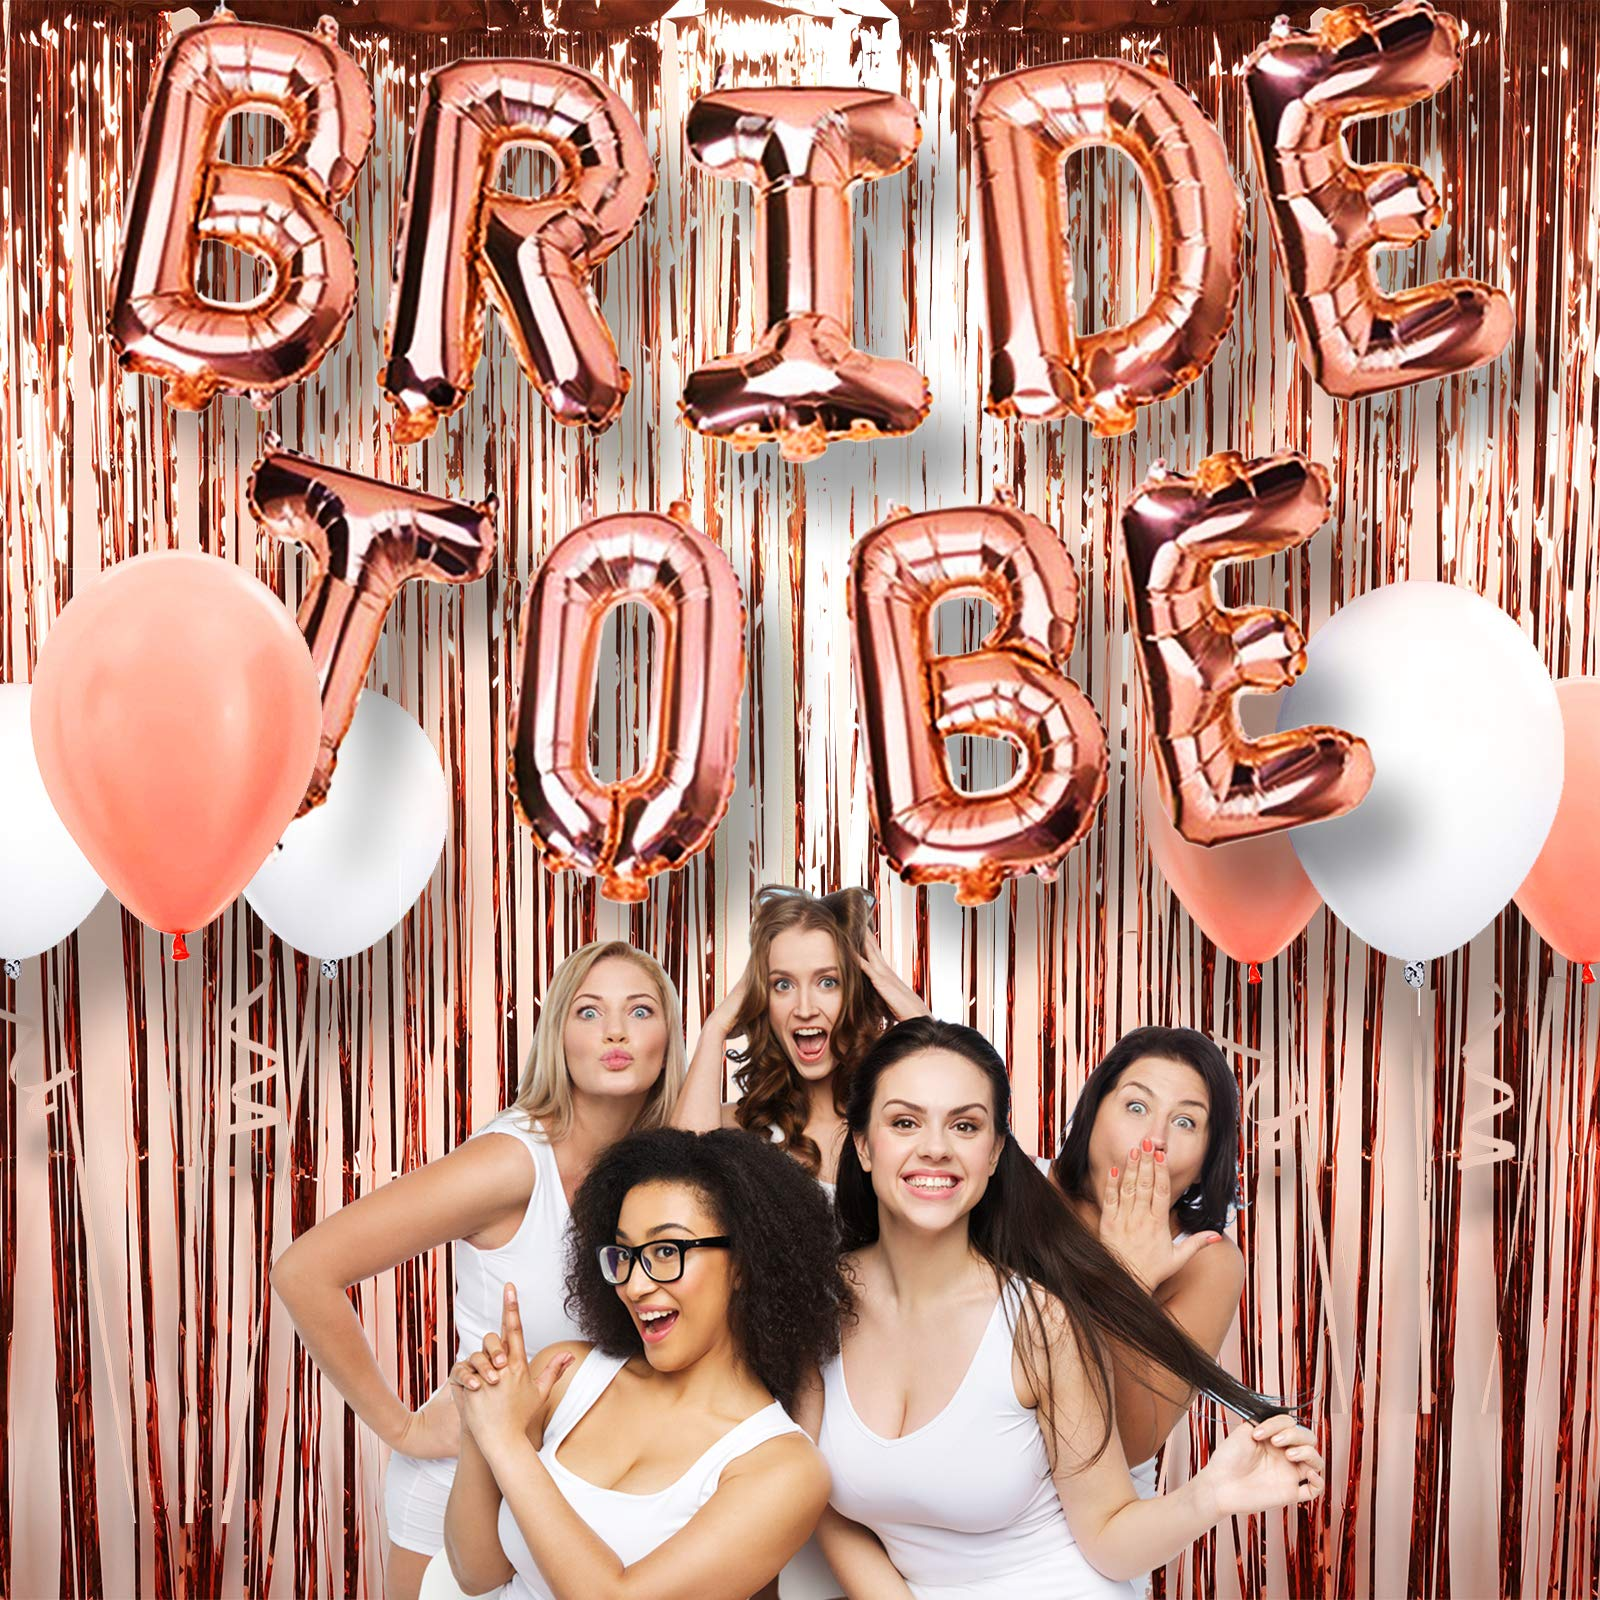 "A3 DIRECT Bachelorette Party Decorations Supplies Set - 16"" Rose Gold Bride to Be Balloons Decor, Foil Fringe Curtain & 6 Piece Latex Balloons for Bridal Showers, Engagement Parties and Weddings"